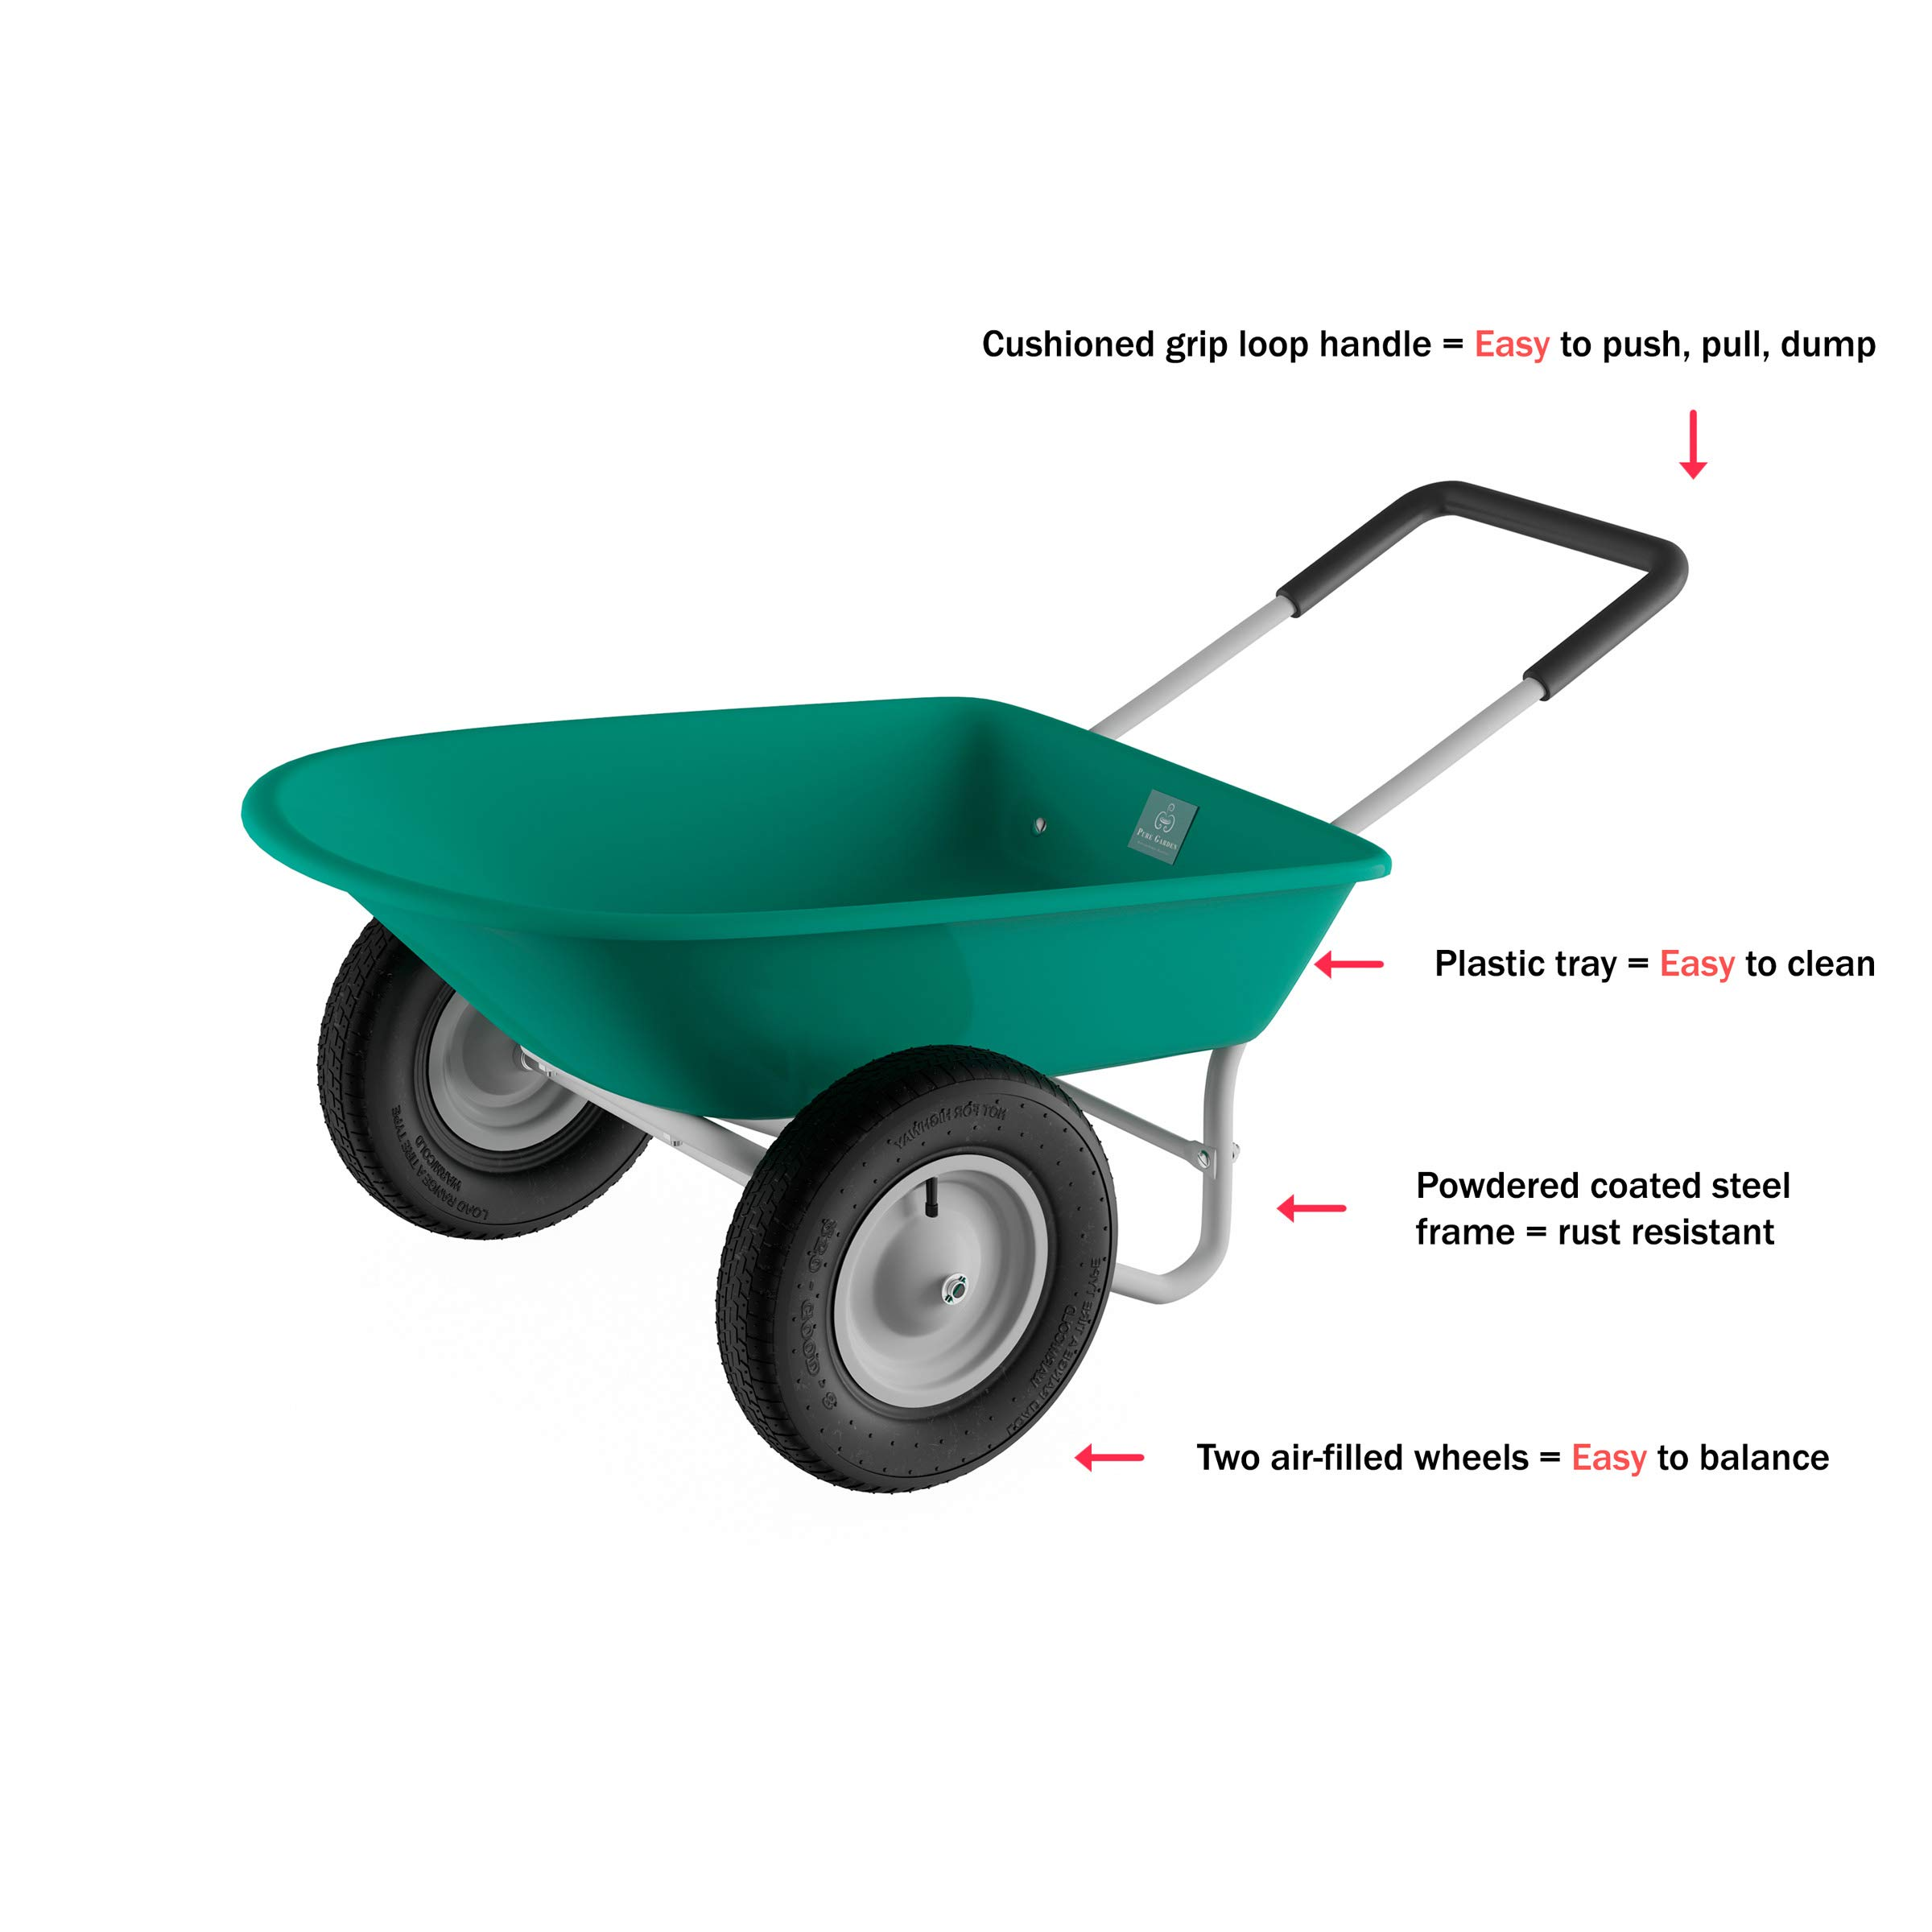 Pure Garden (PURNC) 50-LG1079 Pure 2-Wheeled Garden Wheelbarrow – Large Capacity Rolling Utility Dump Cart for Residential DIY Landscaping, Lawn Care and Remodeling by Pure Garden (PURNC) (Image #4)